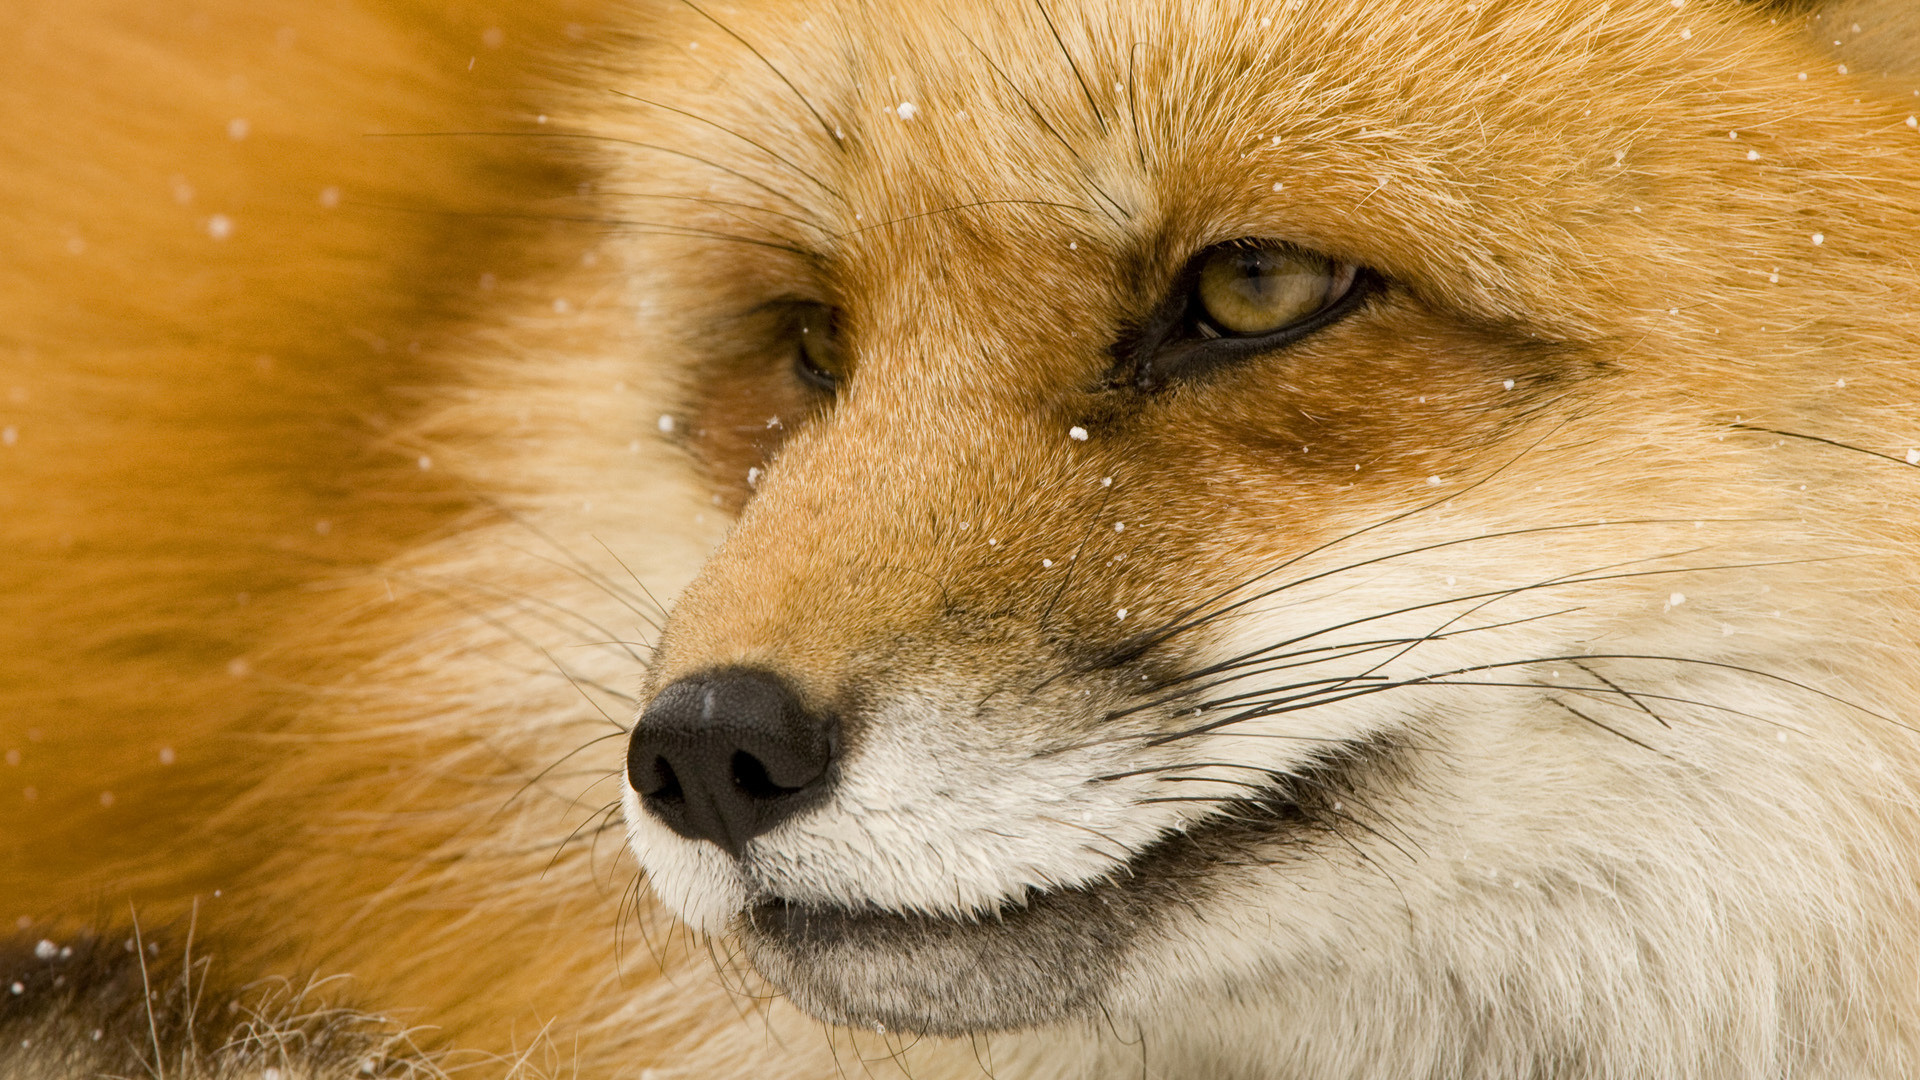 Animals Fox Orange Wallpaper Animal Wallpapers: Fox Full HD Wallpaper And Background